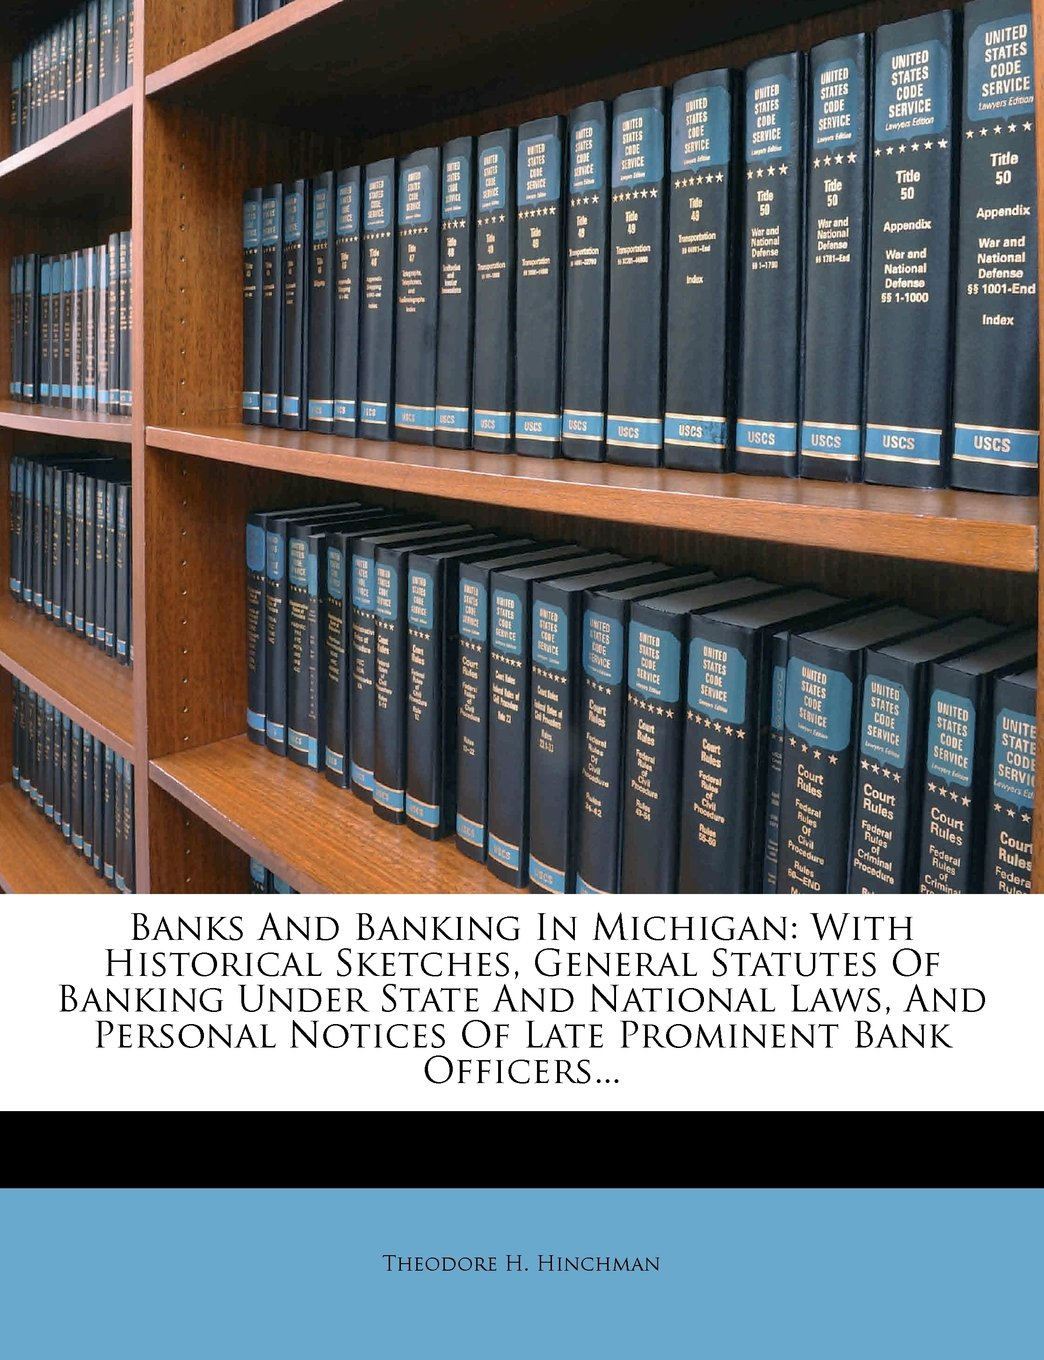 Download Banks And Banking In Michigan: With Historical Sketches, General Statutes Of Banking Under State And National Laws, And Personal Notices Of Late Prominent Bank Officers... PDF